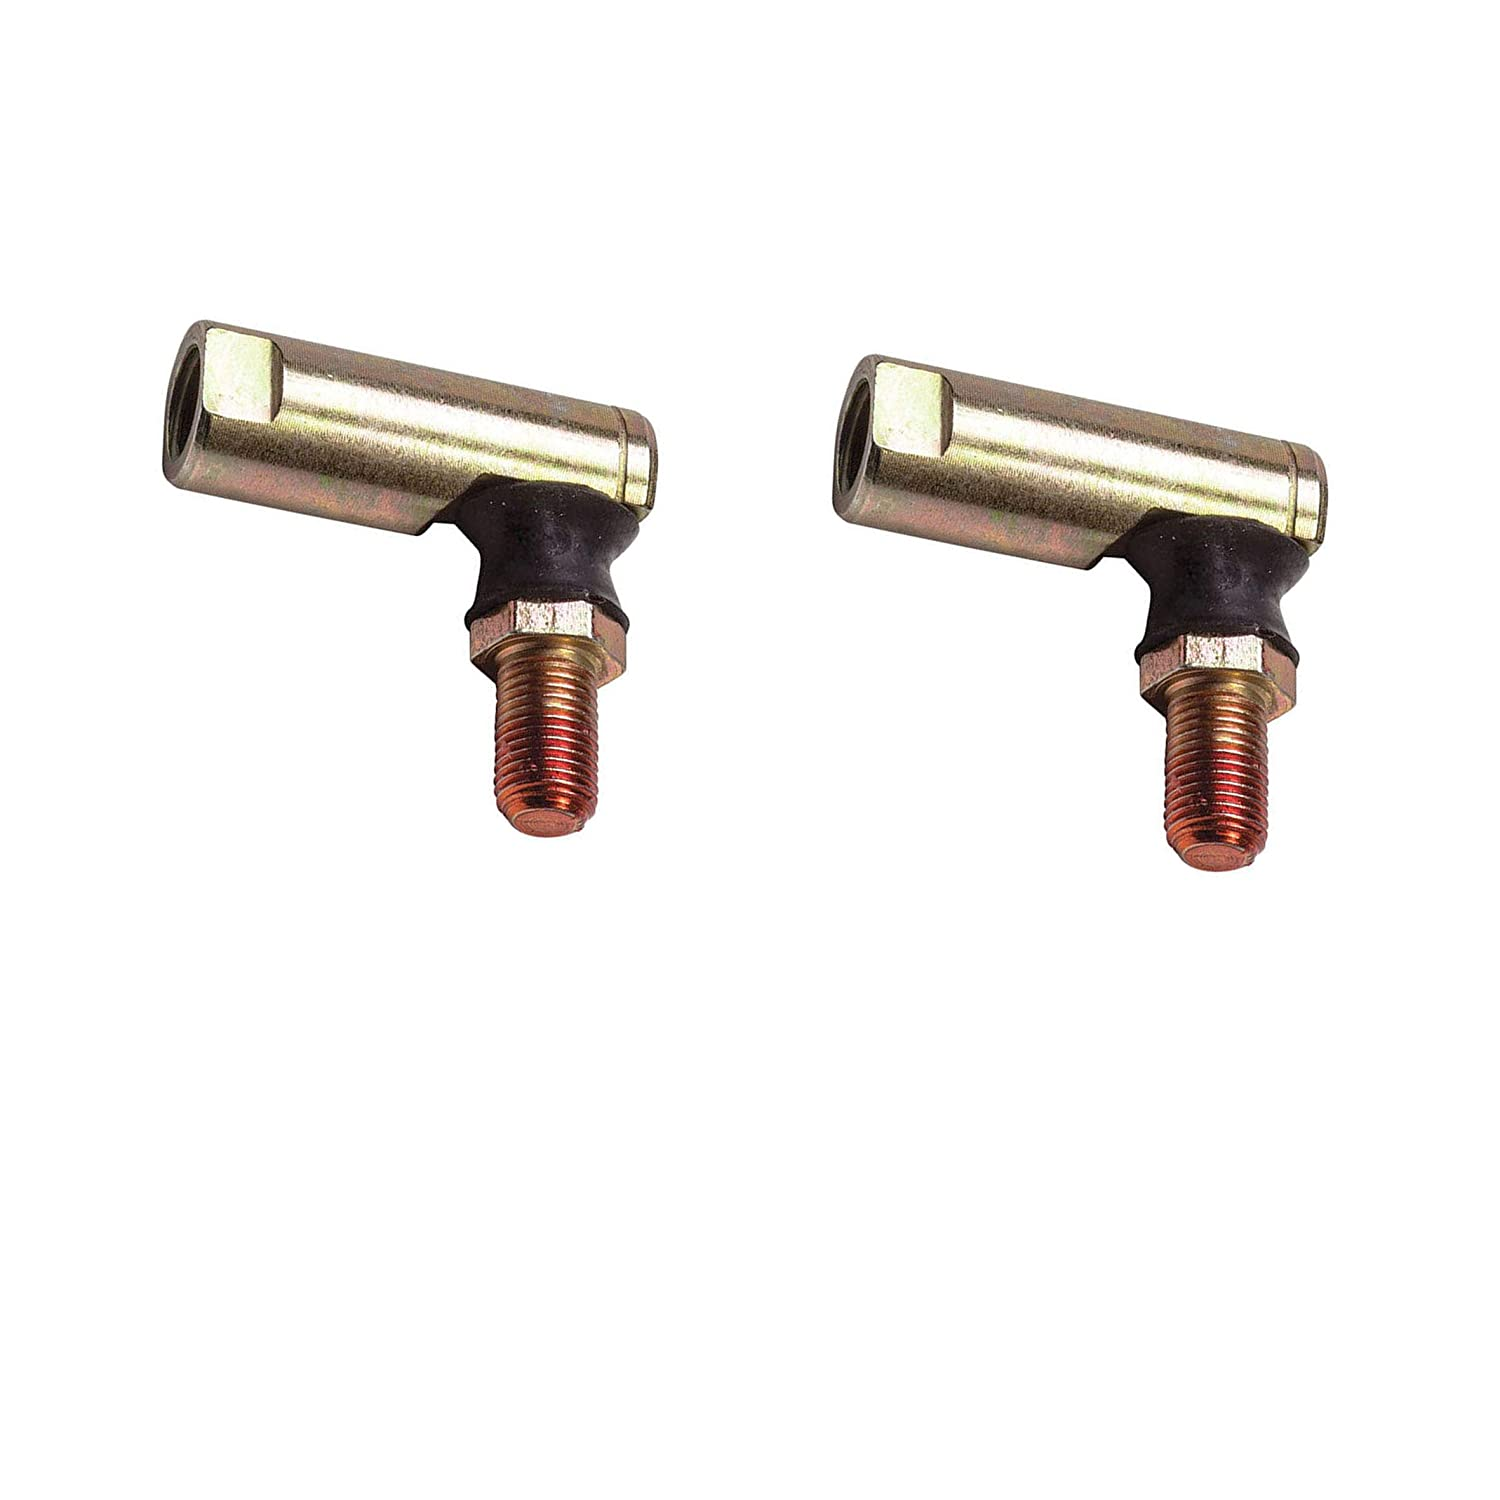 Podoy 923-0448A Tractor Ball Joints for MTD Cub Troy Bilt Huskee 923-0448 923-0448A 723-0448 723-0448A Lawn Mower Replacement Parts(2 Set)